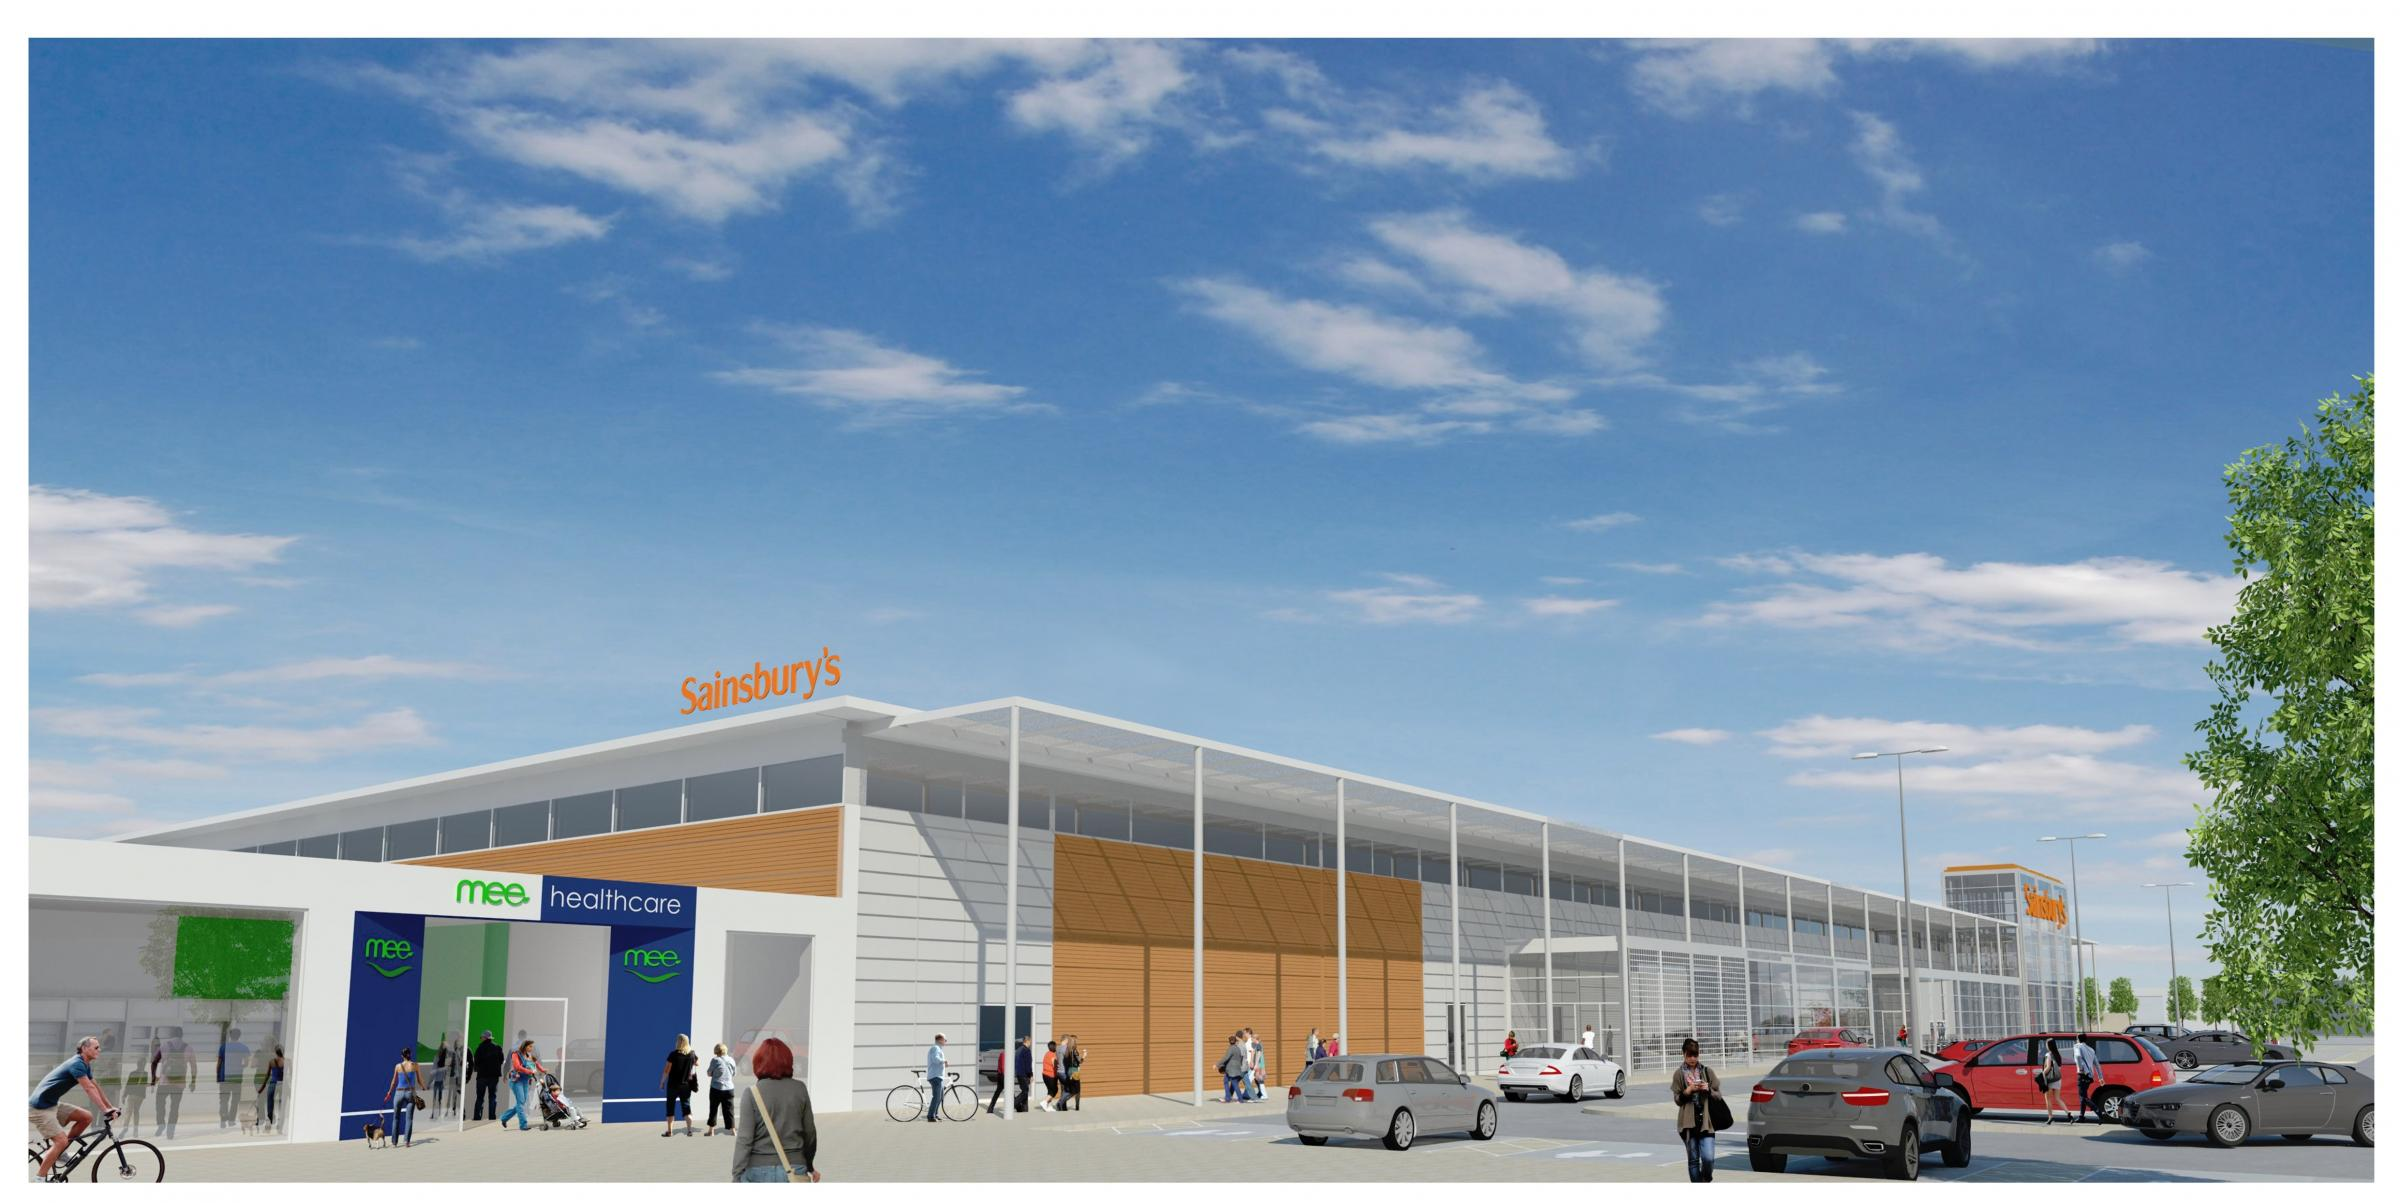 Plans for Sainsbury's third Colchester store unveiled